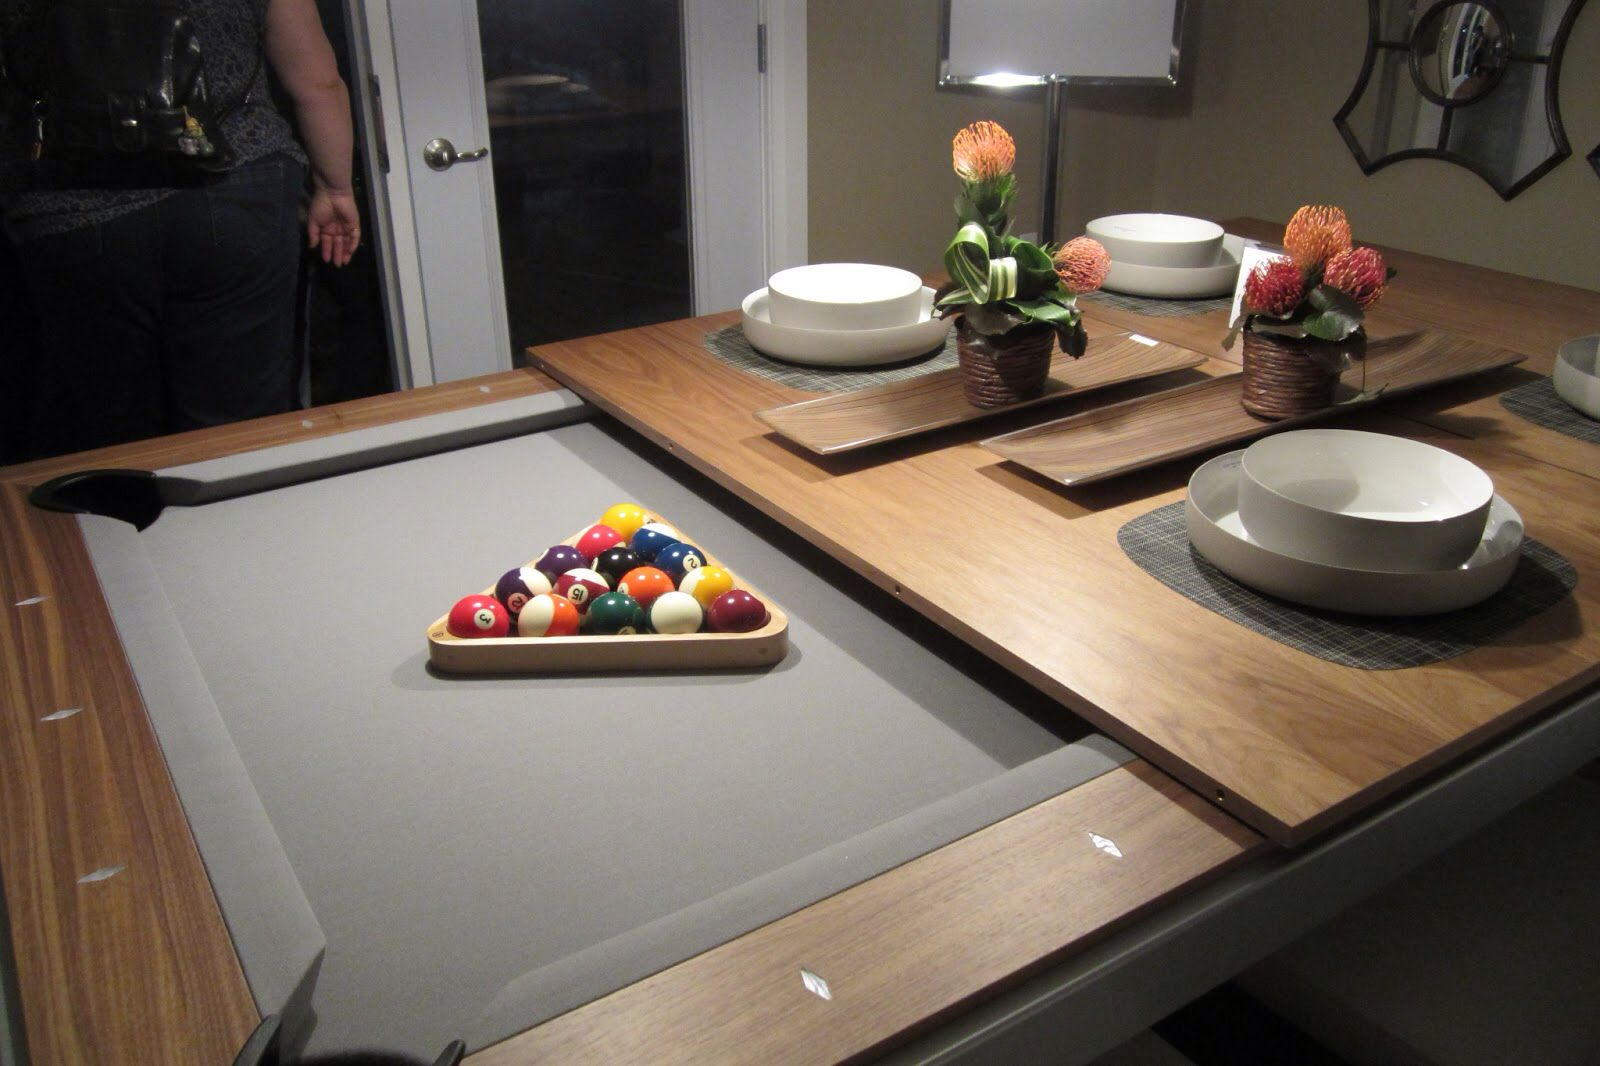 Pool table dining top AWESOME! That is what I want for